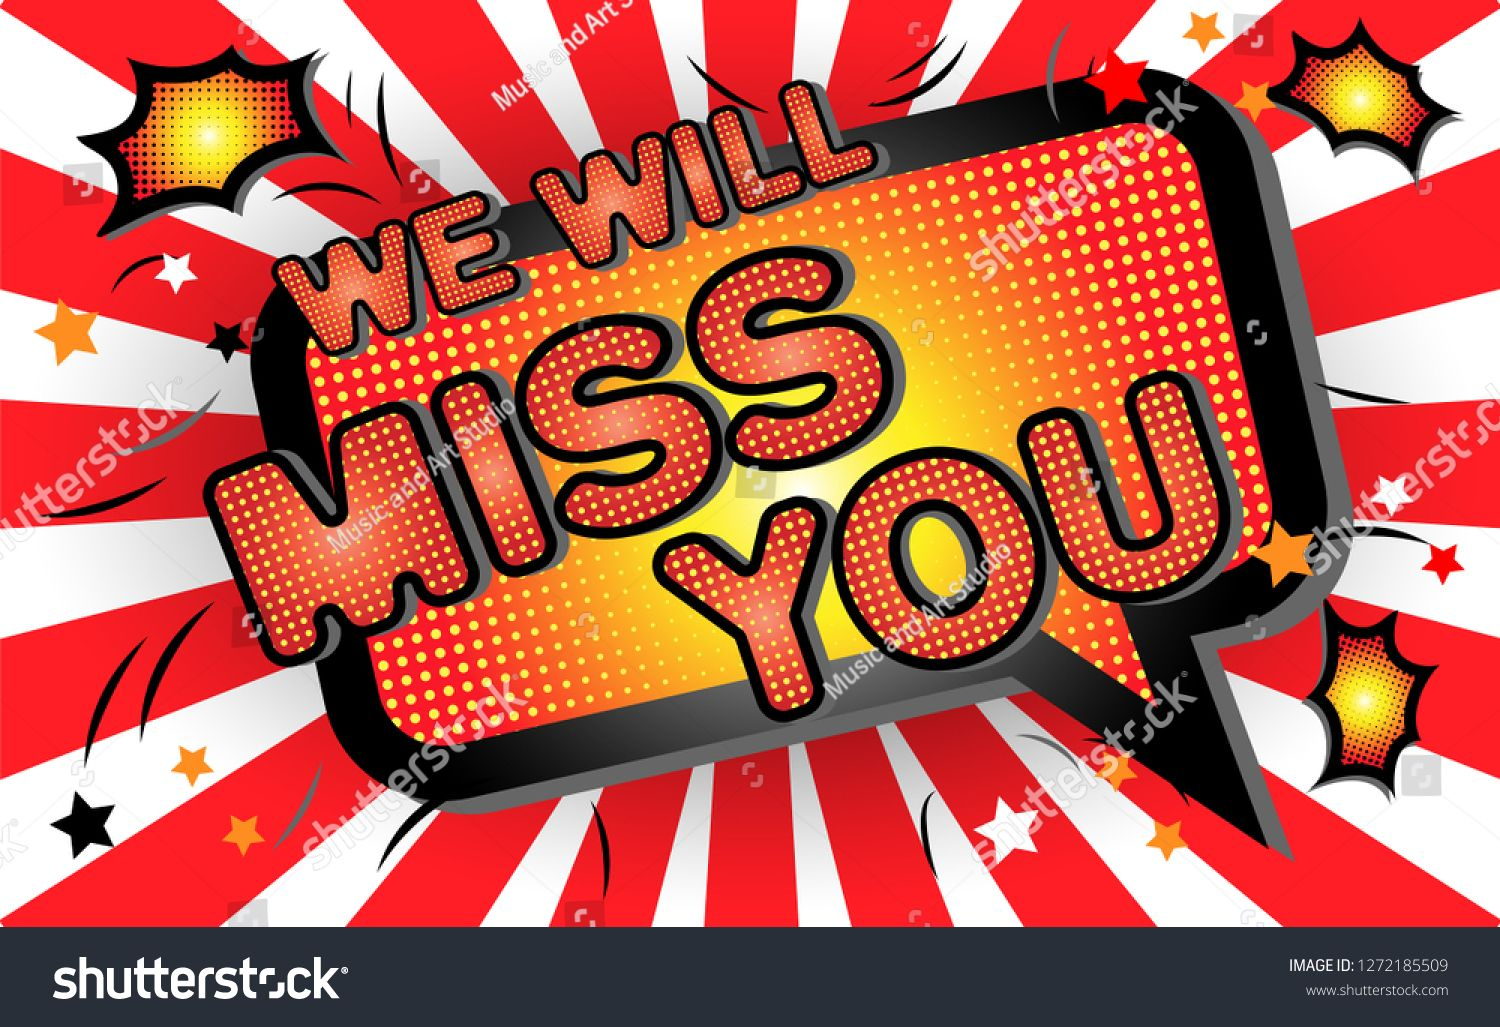 Farewell Party Template We Will Miss You Text Design Pop Art Comic Style Colorful Background For T Shirt Print Banner Flye Super Party Party Background Party